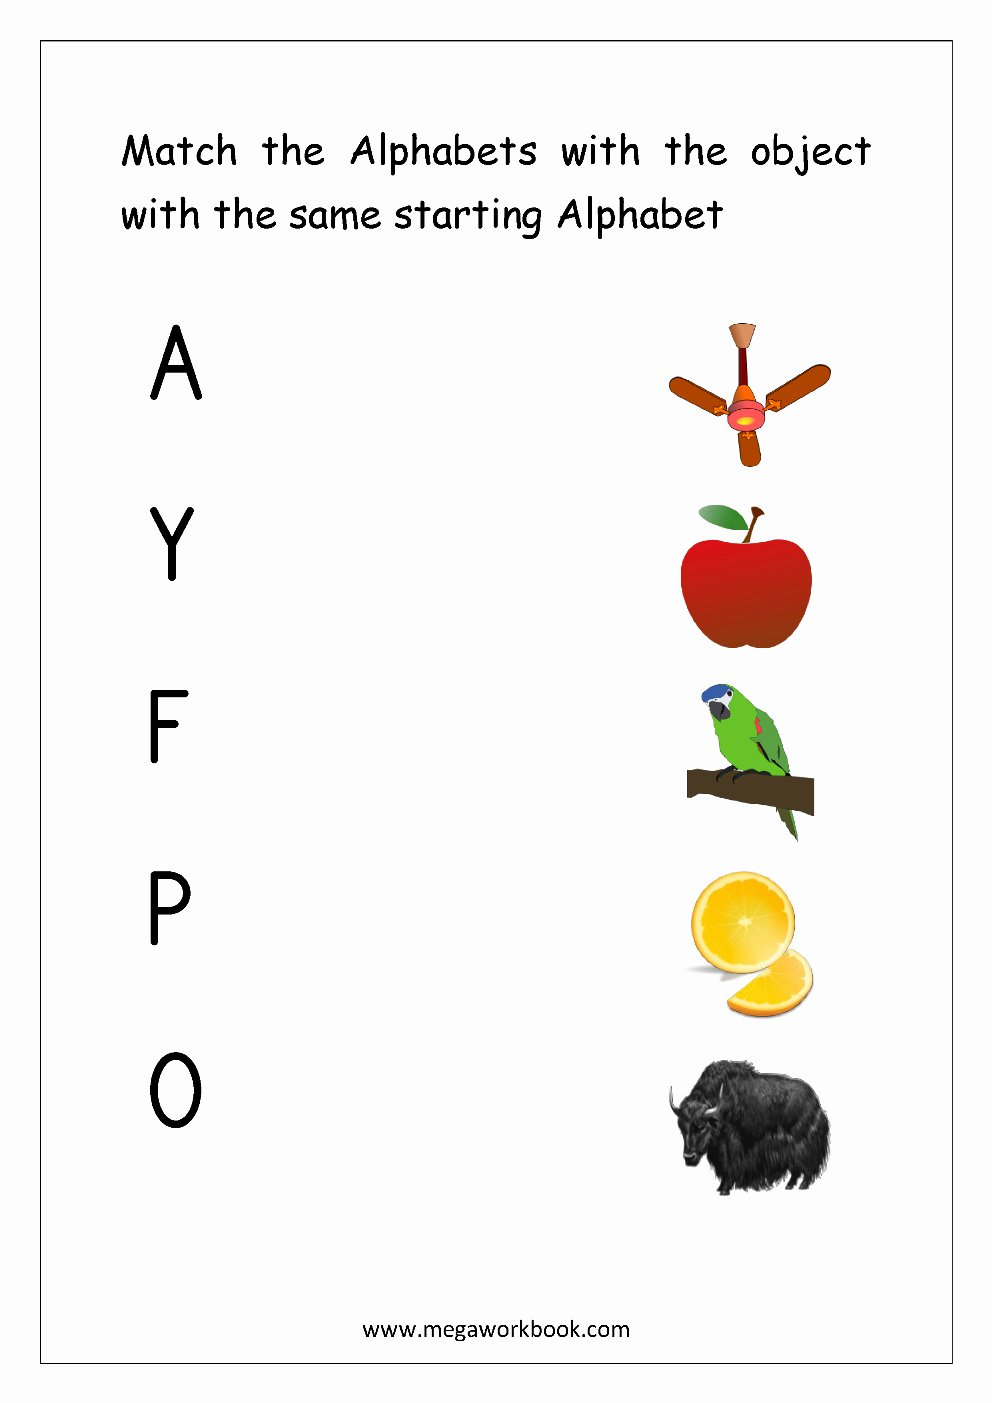 Matching Objects Worksheets for Preschoolers Awesome Letter Matching Worksheet Match Object with the Starting